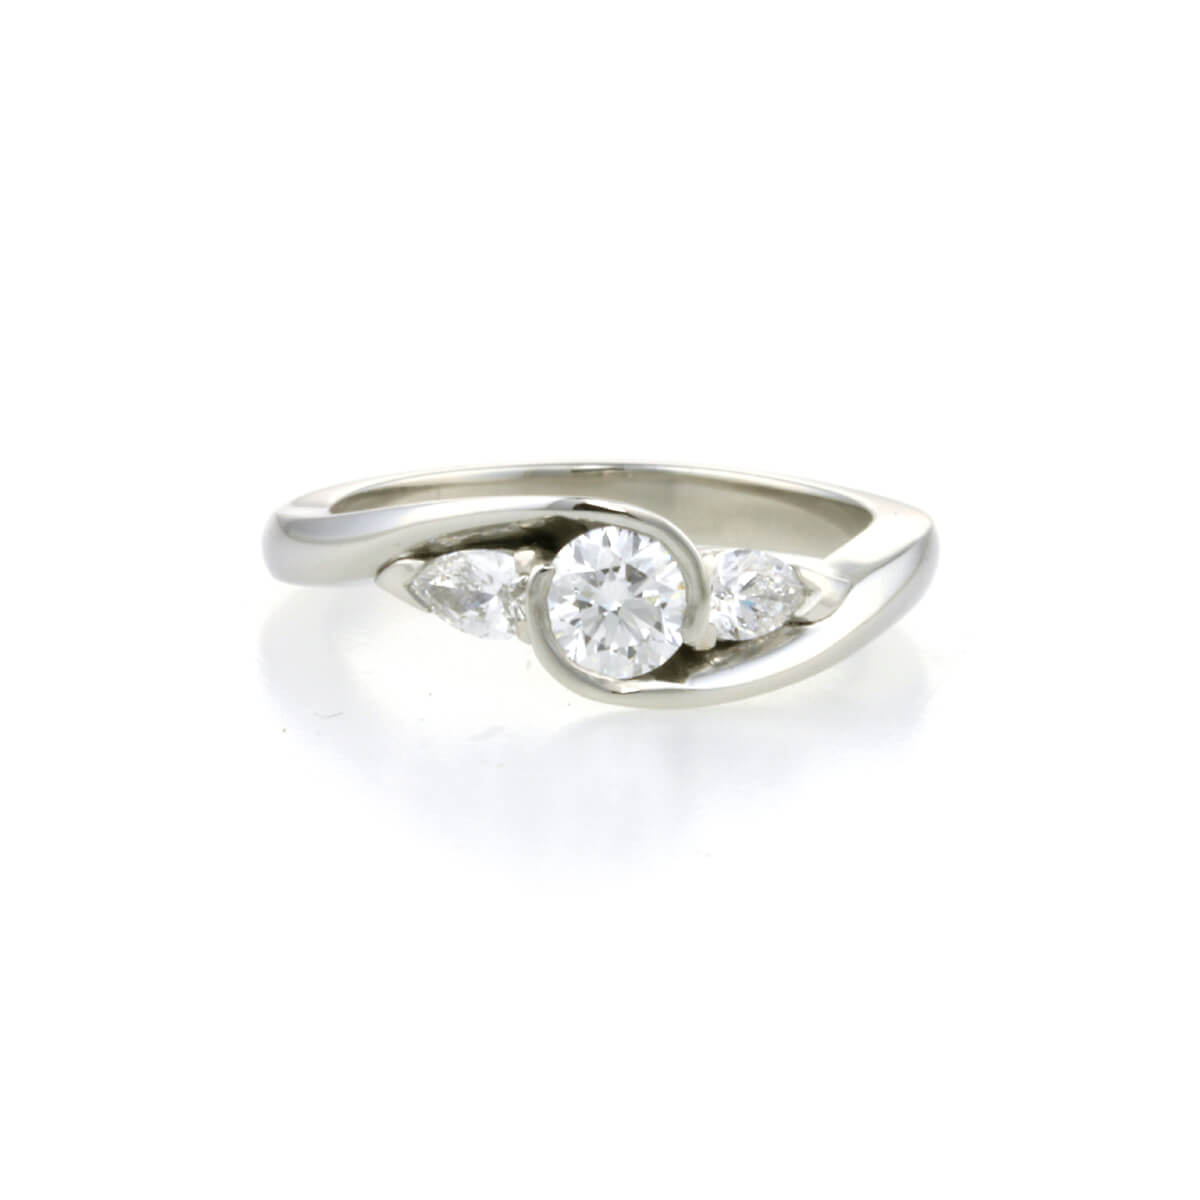 handmade-platinum-and-diamond-round-brilliant-and-pear-shaped-engagement-ring-copy